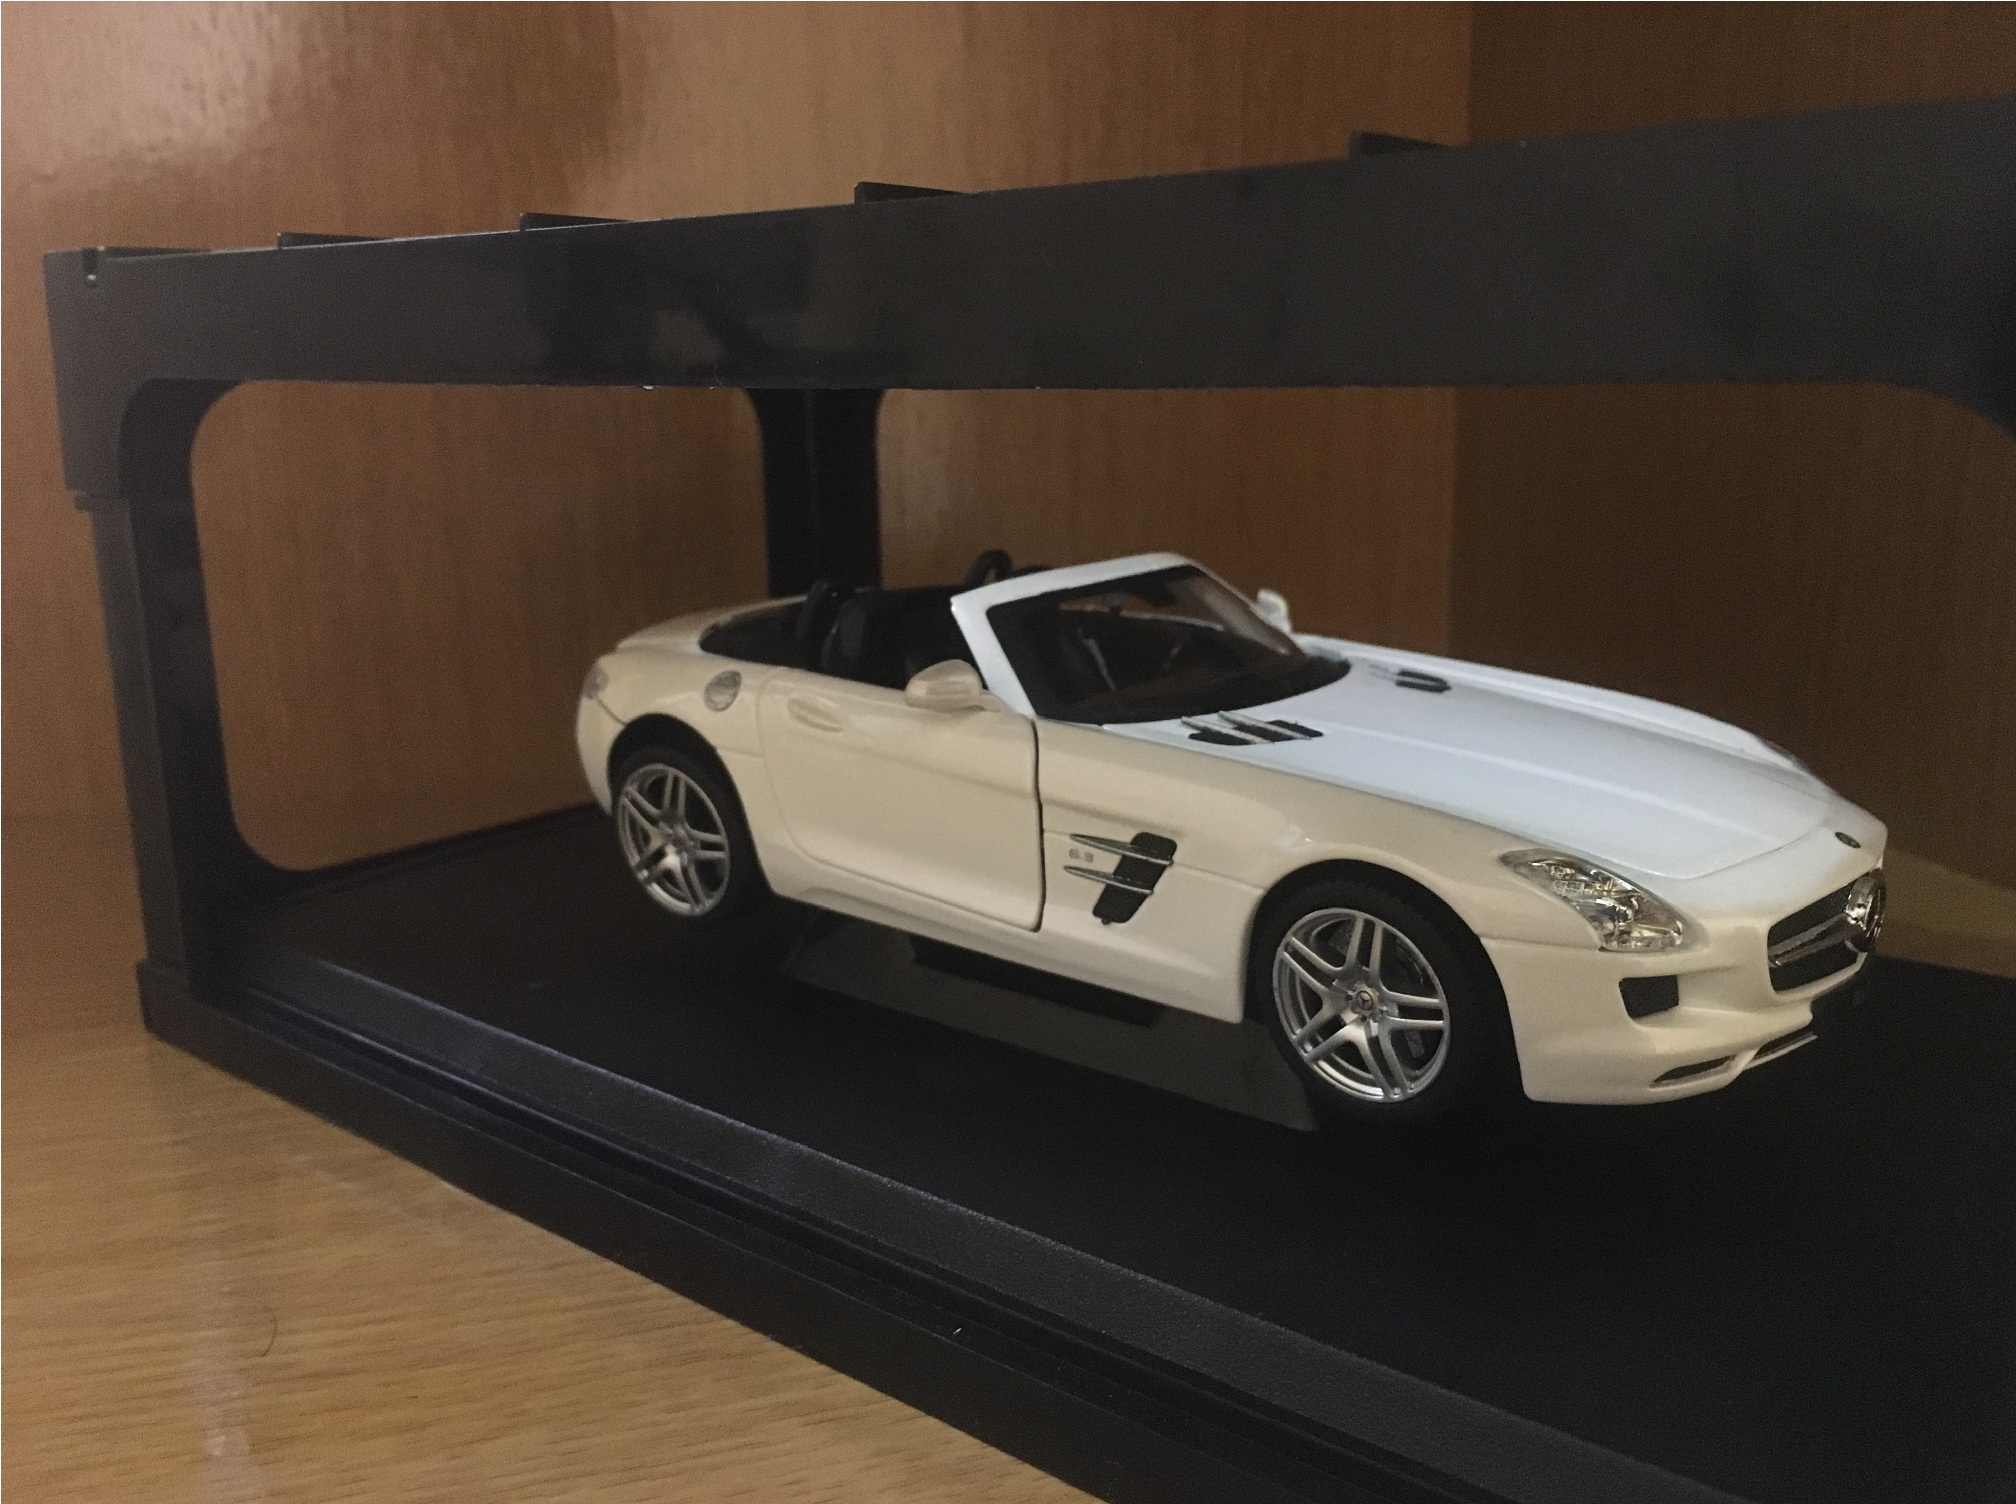 Cool mercedes benz sls amg roadster toy from unioil for Mercedes benz sls amg toy car